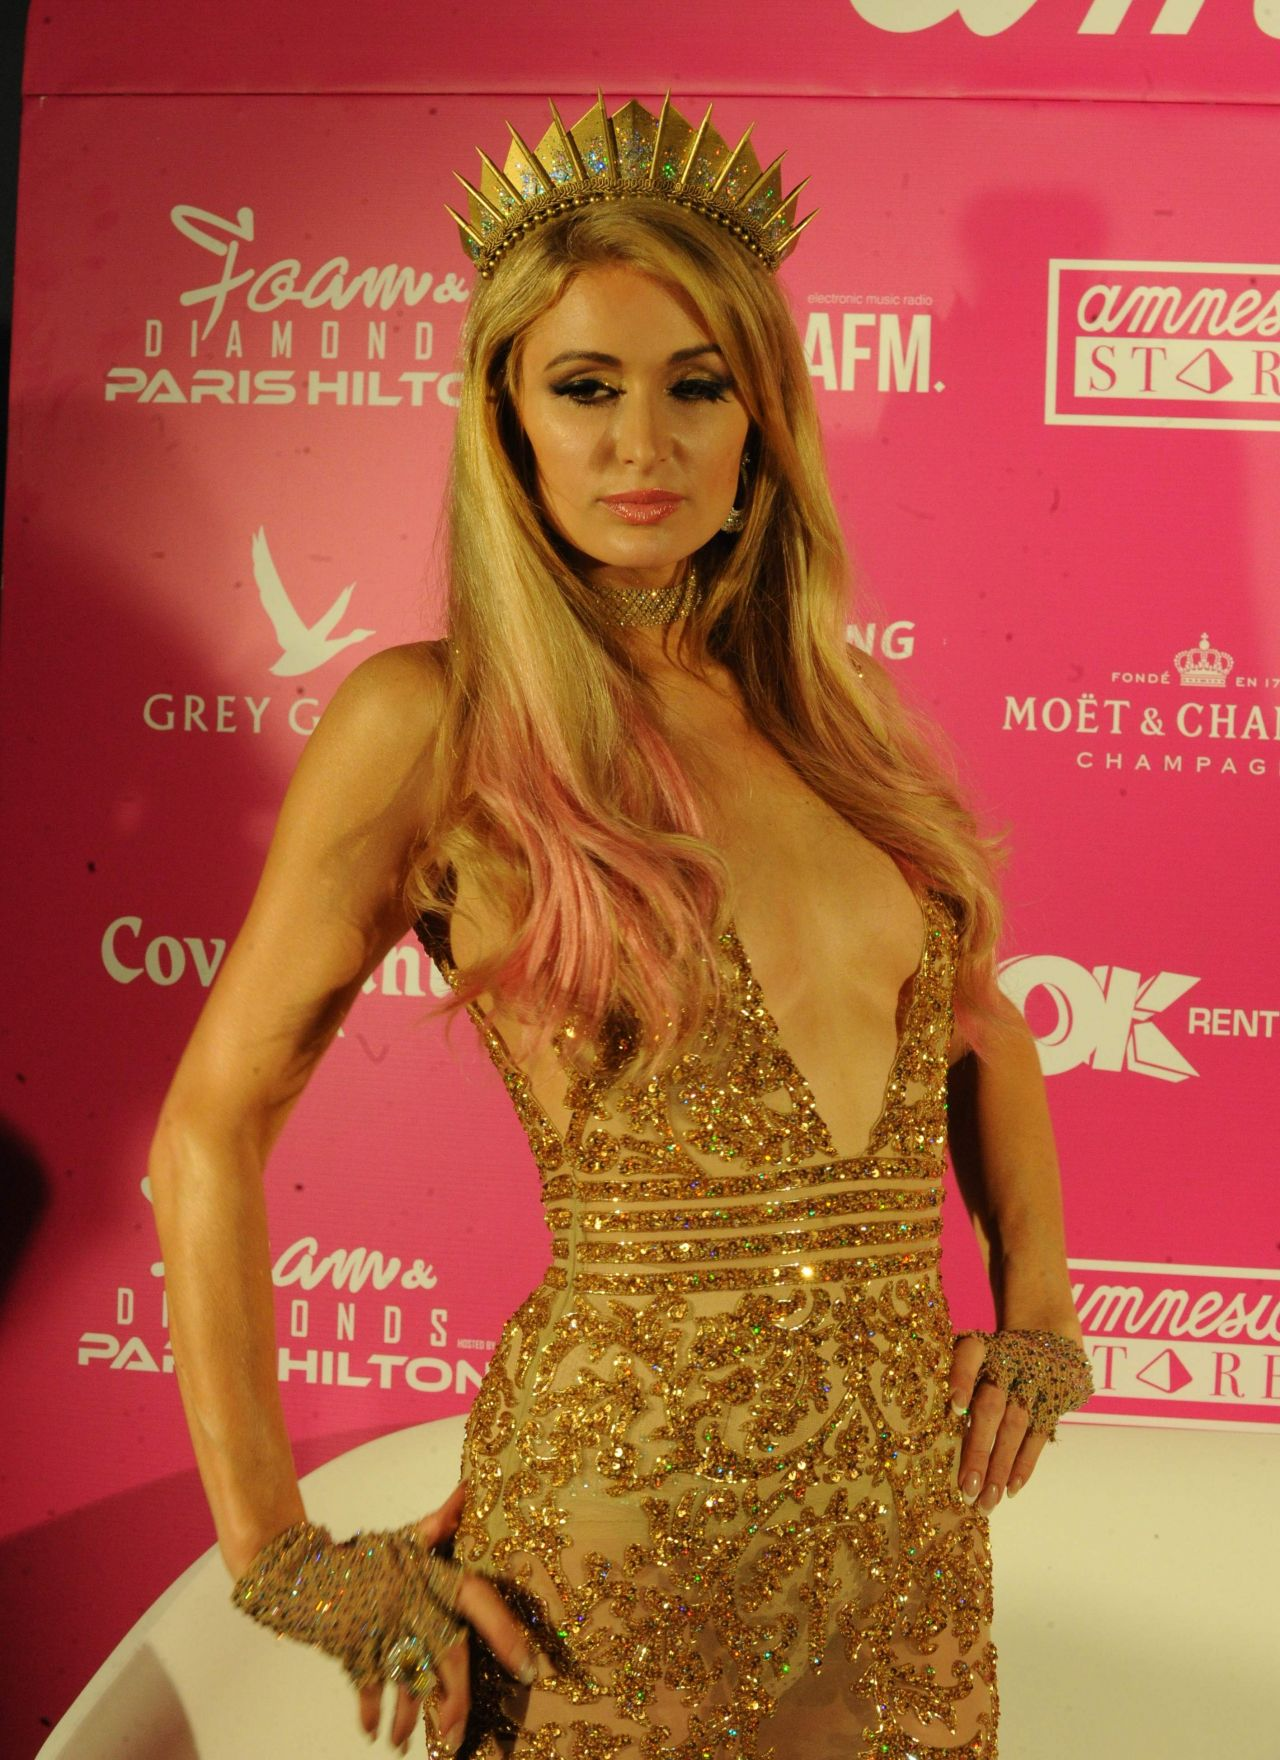 Paris hilton latest photos celebmafia - Paris hilton ibiza ...